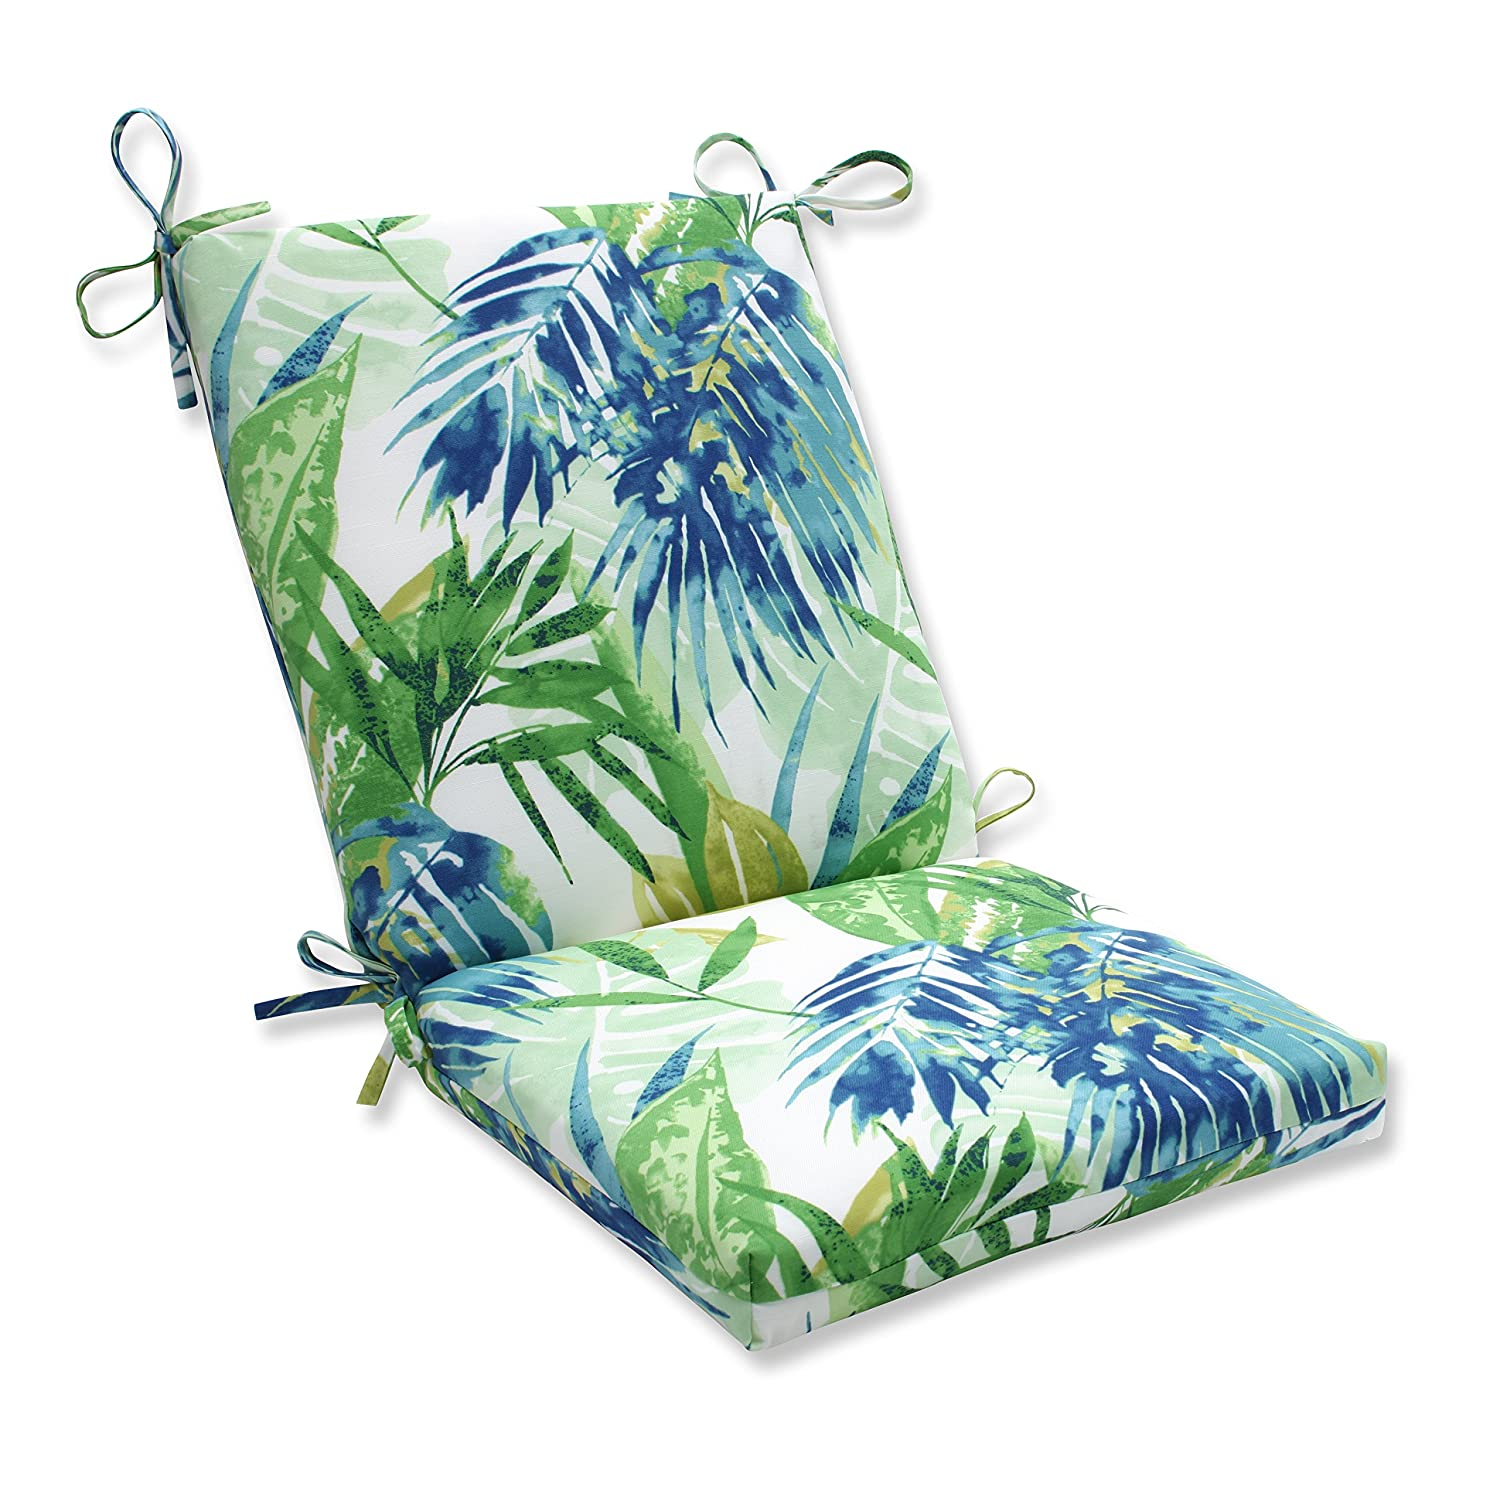 Pillow Perfect Outdoor Indoor Soleil Squared Corners Chair Cushion, Blue Green